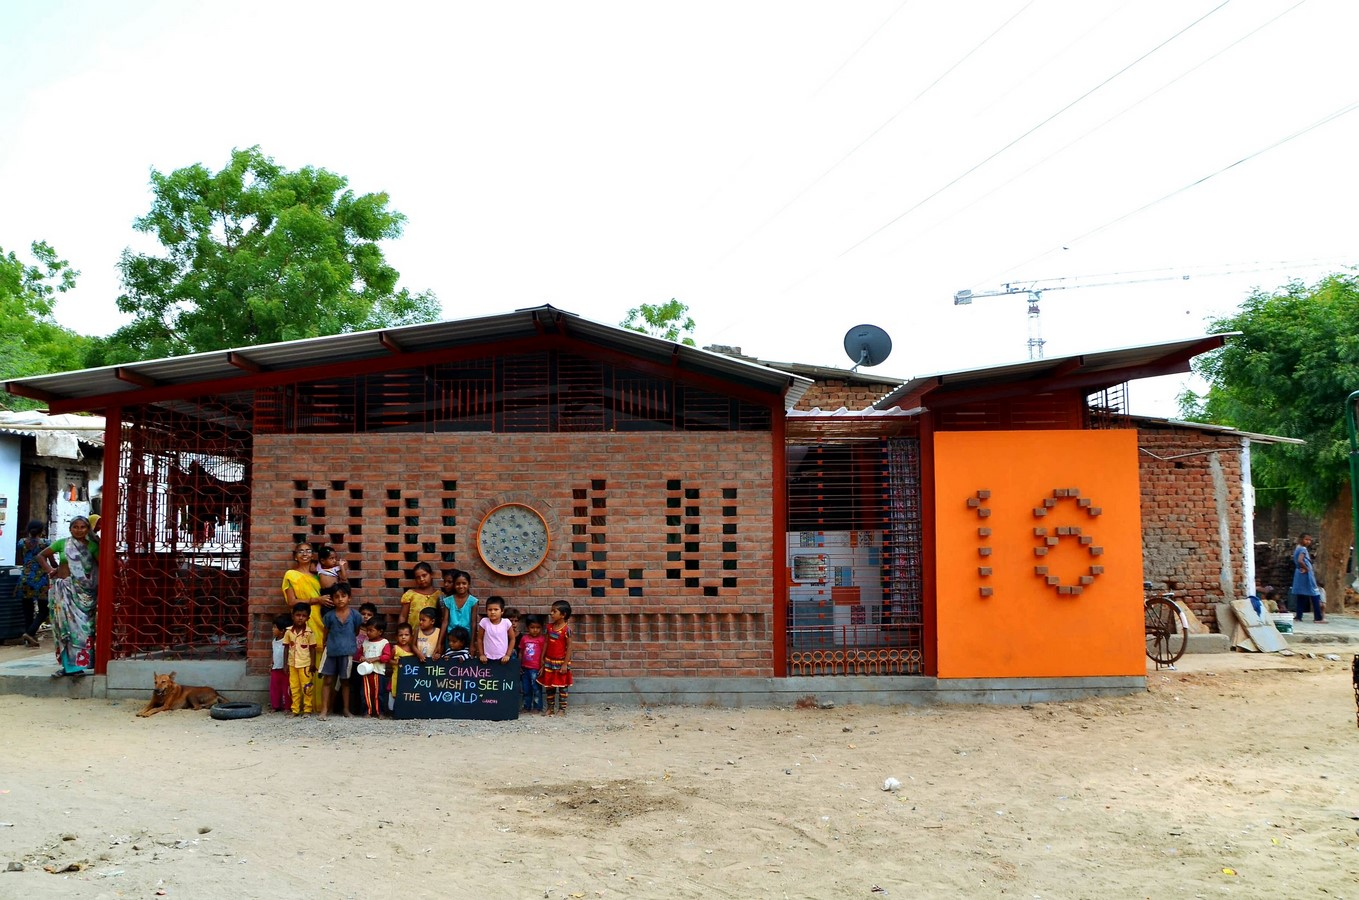 10 Reasons to architects should practice for humanitarian architecture - Sheet3